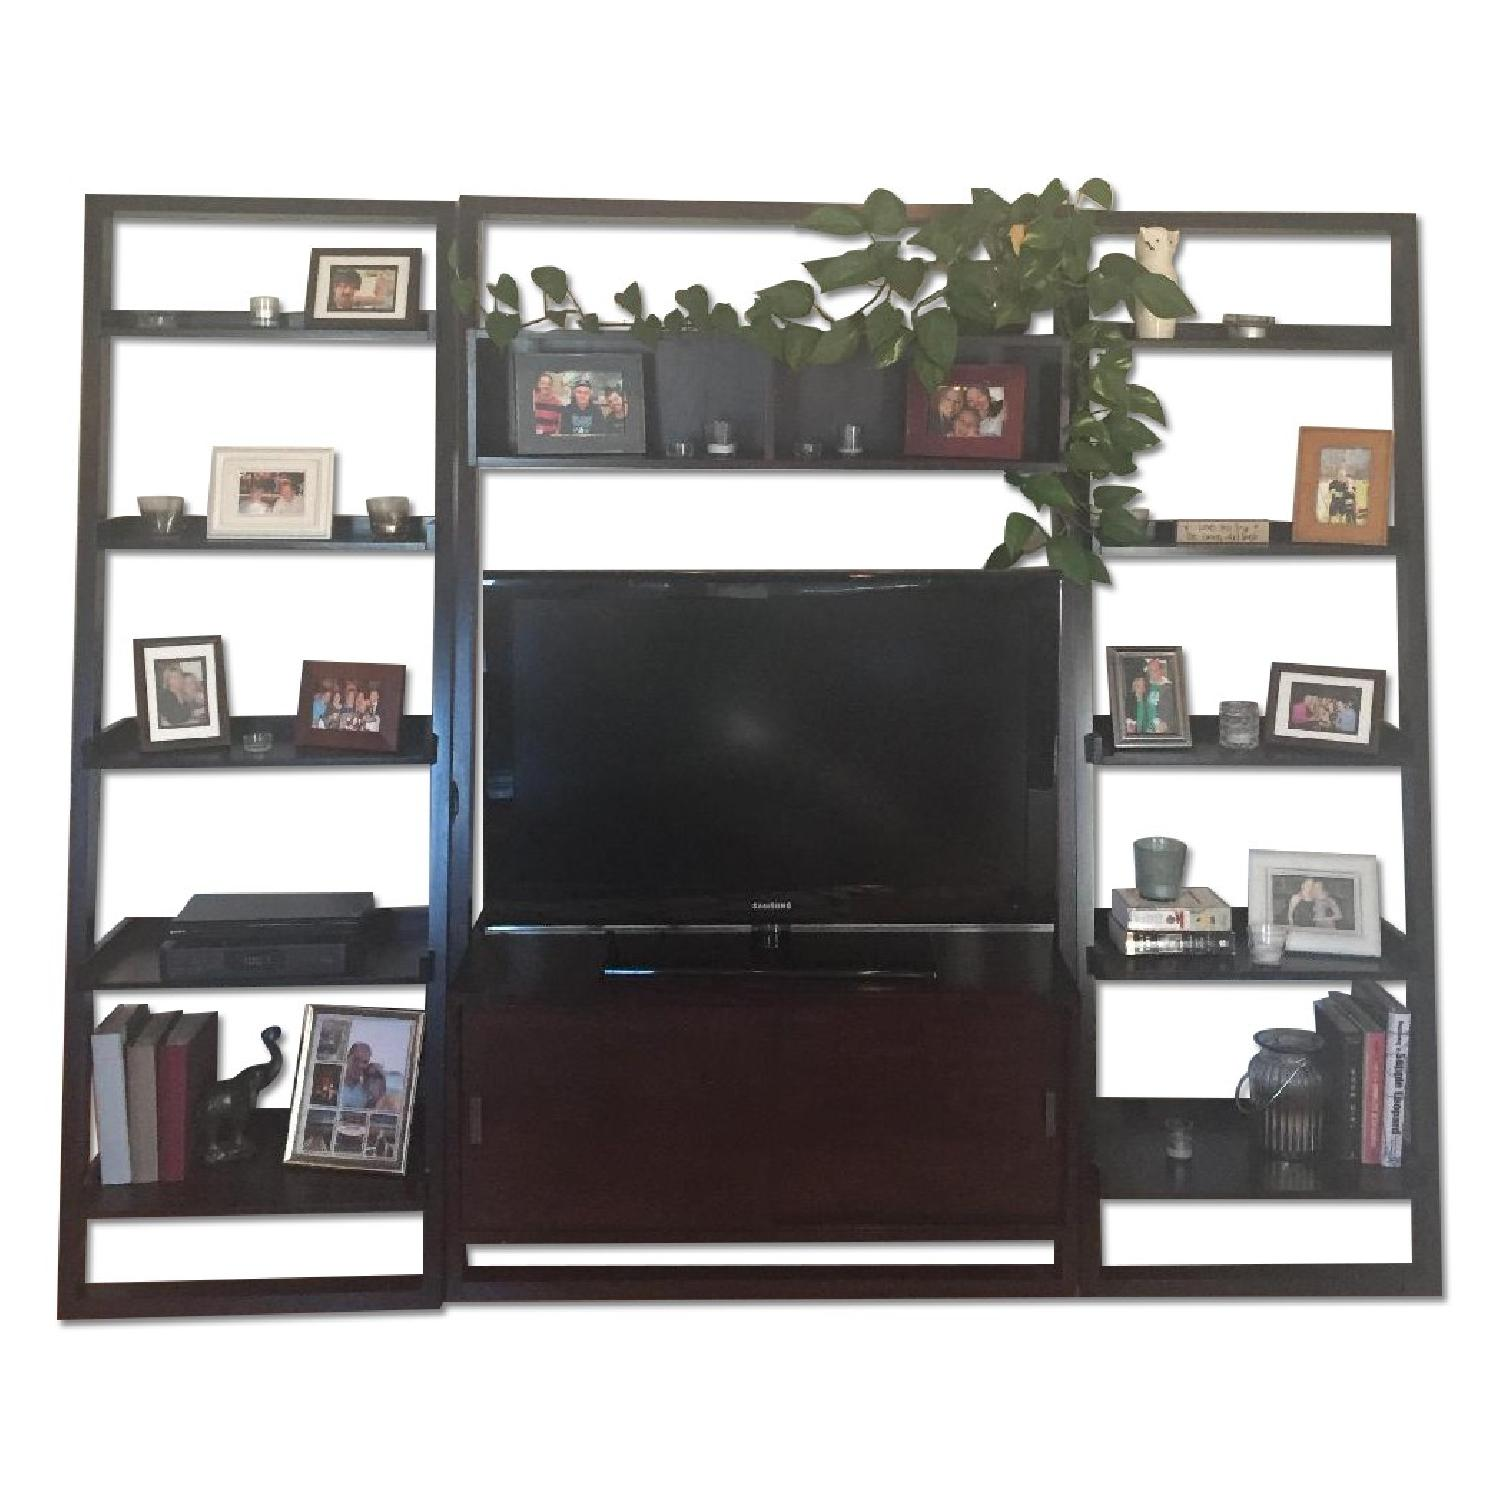 Crate & Barrel TV Stand w /Bookcases - image-0